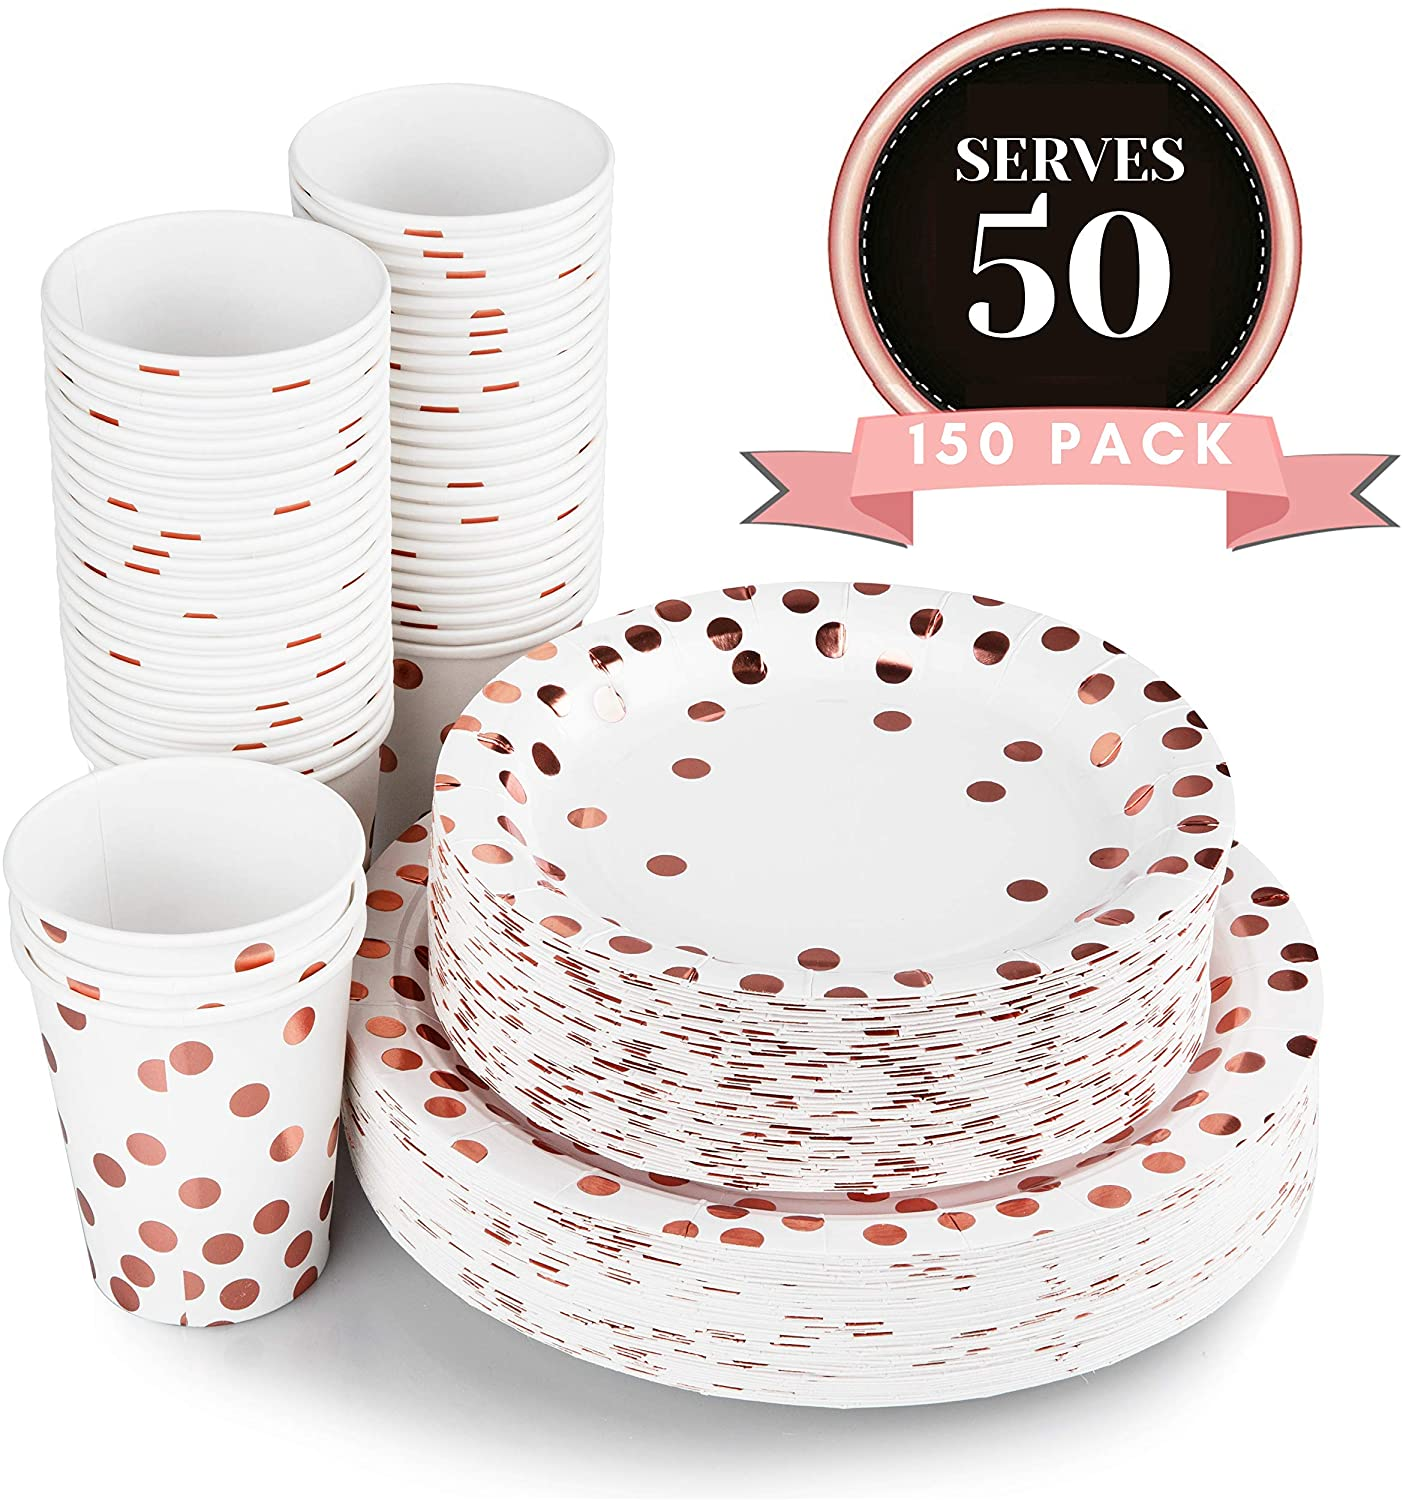 Luxomi Rose Gold Paper Plates - 150 Pc Plates Foil Design 50 Dinner and 50 Dessert Plates and 50 Cups for Baby Shower Birthday Bridal Bachelorette Holiday Party Supplies